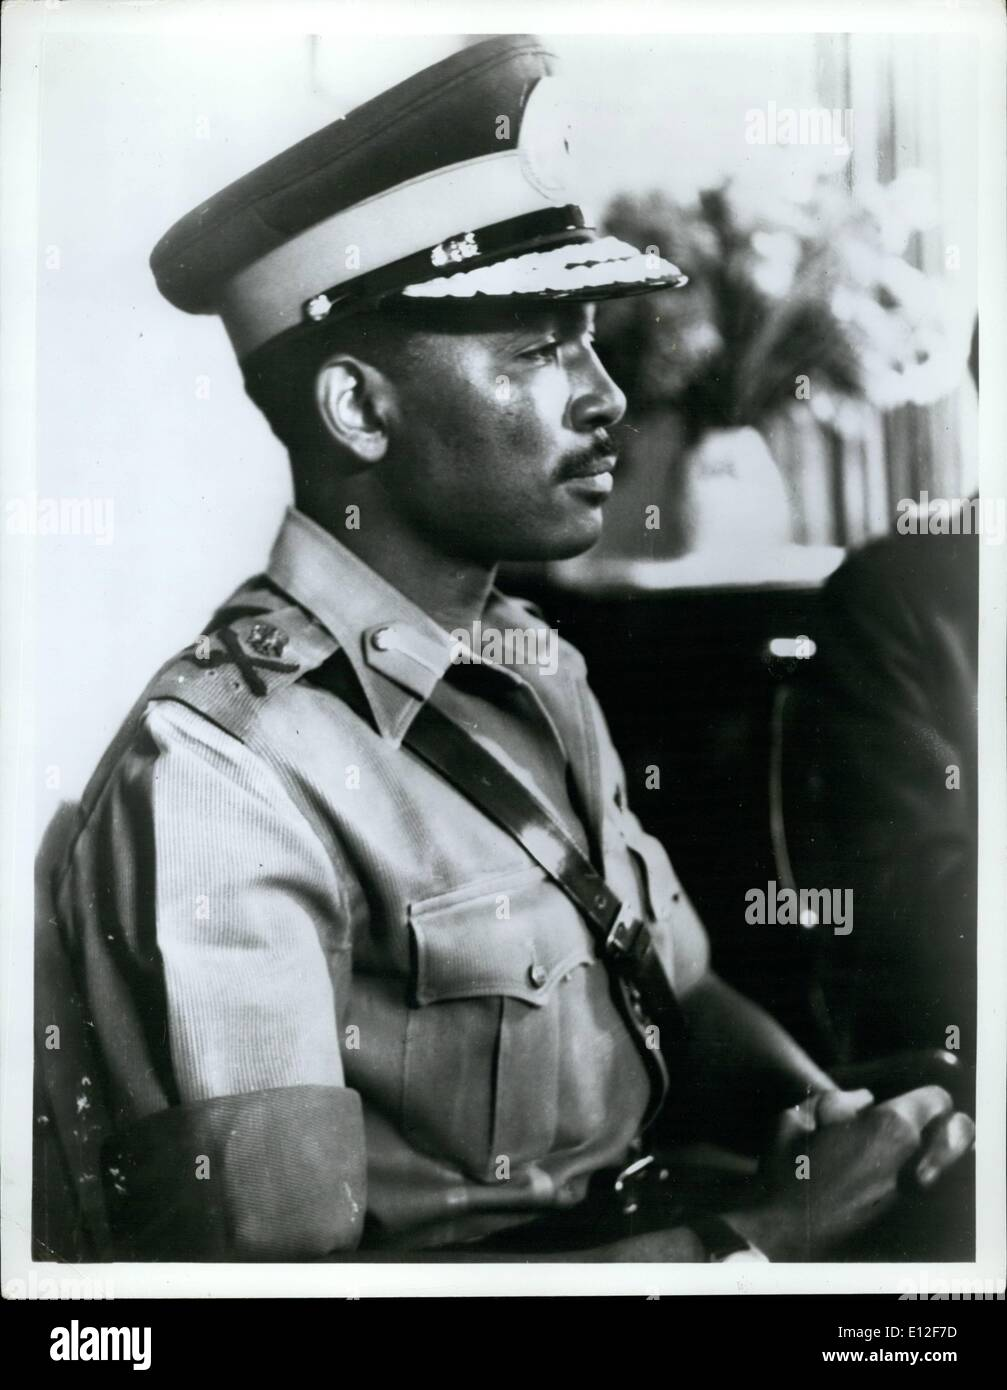 Dec. 21, 2011 - The Nigerian Federal Ministry of Defense announced on June 1st, 1967 the promotion of Lt. Col. Yakubu Gowon to the rank of the Major General. He is commander-in-Chief of the Federal Nigerian Army. Maj. Gen. Gown is shown here in his new uniform. - Stock Image